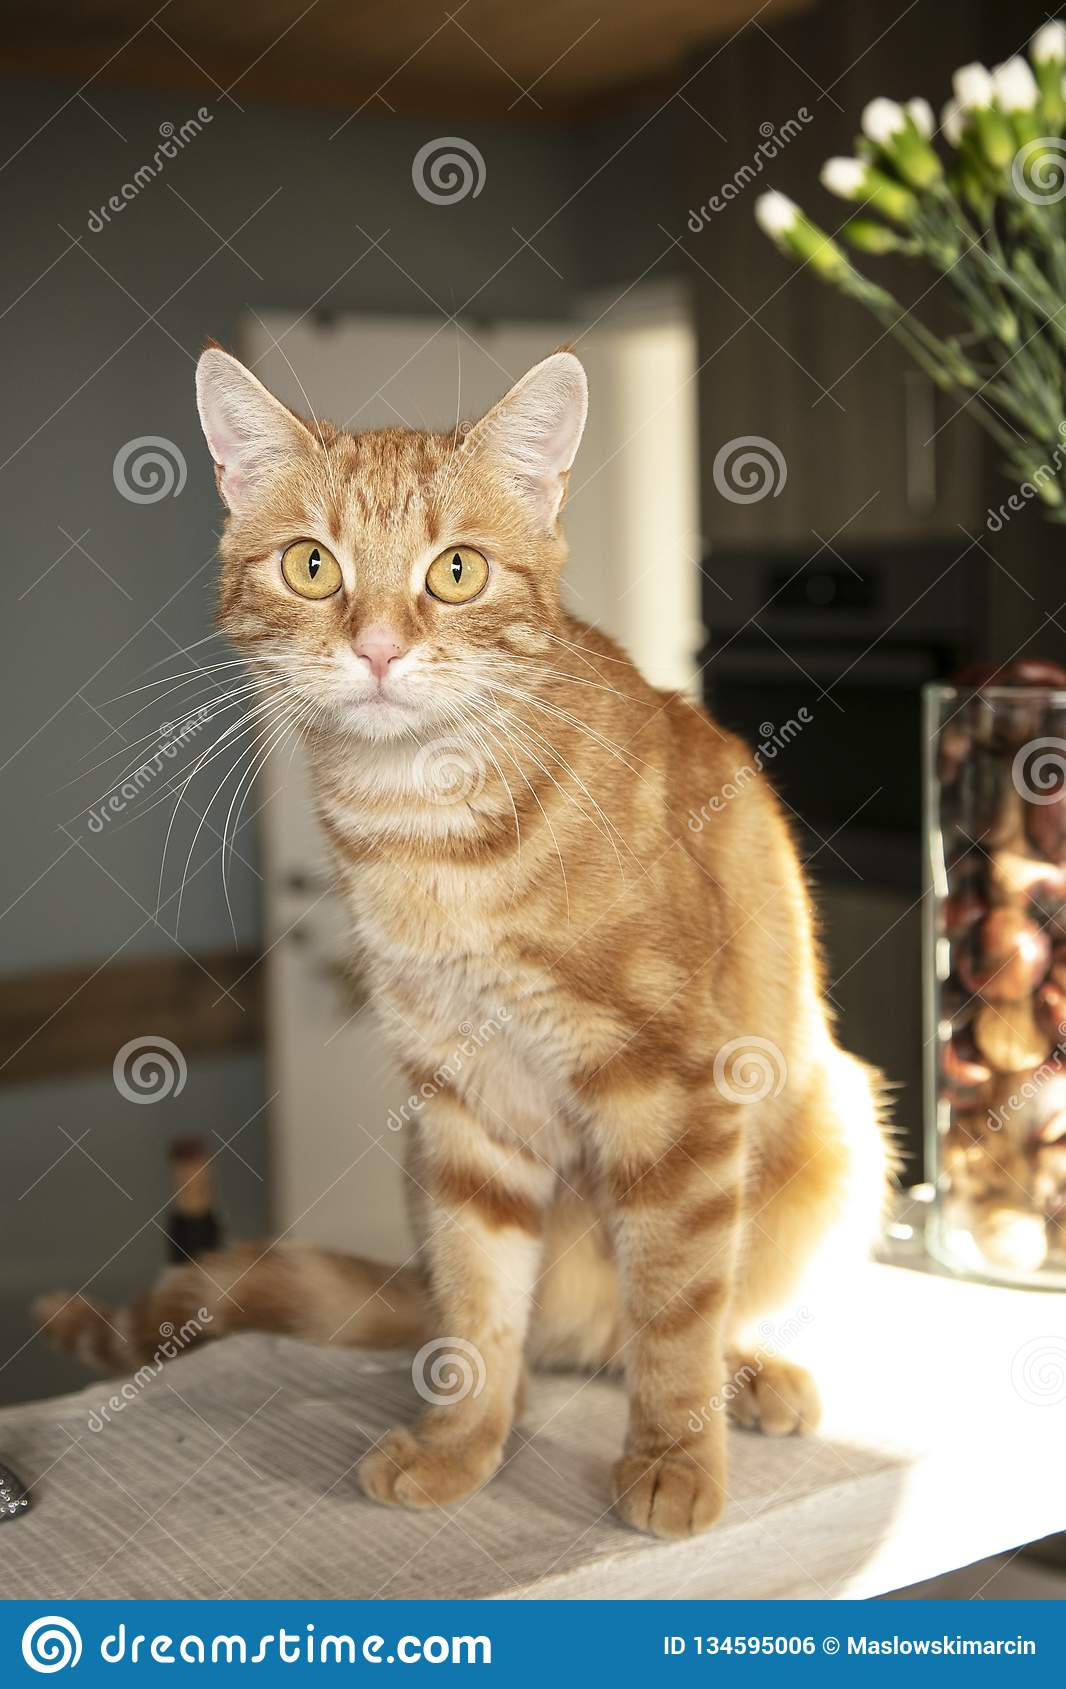 Red Fur The Cat Is Sitting On The Kitchen Counter Stock Photo Image Of Friendship Chair 134595006